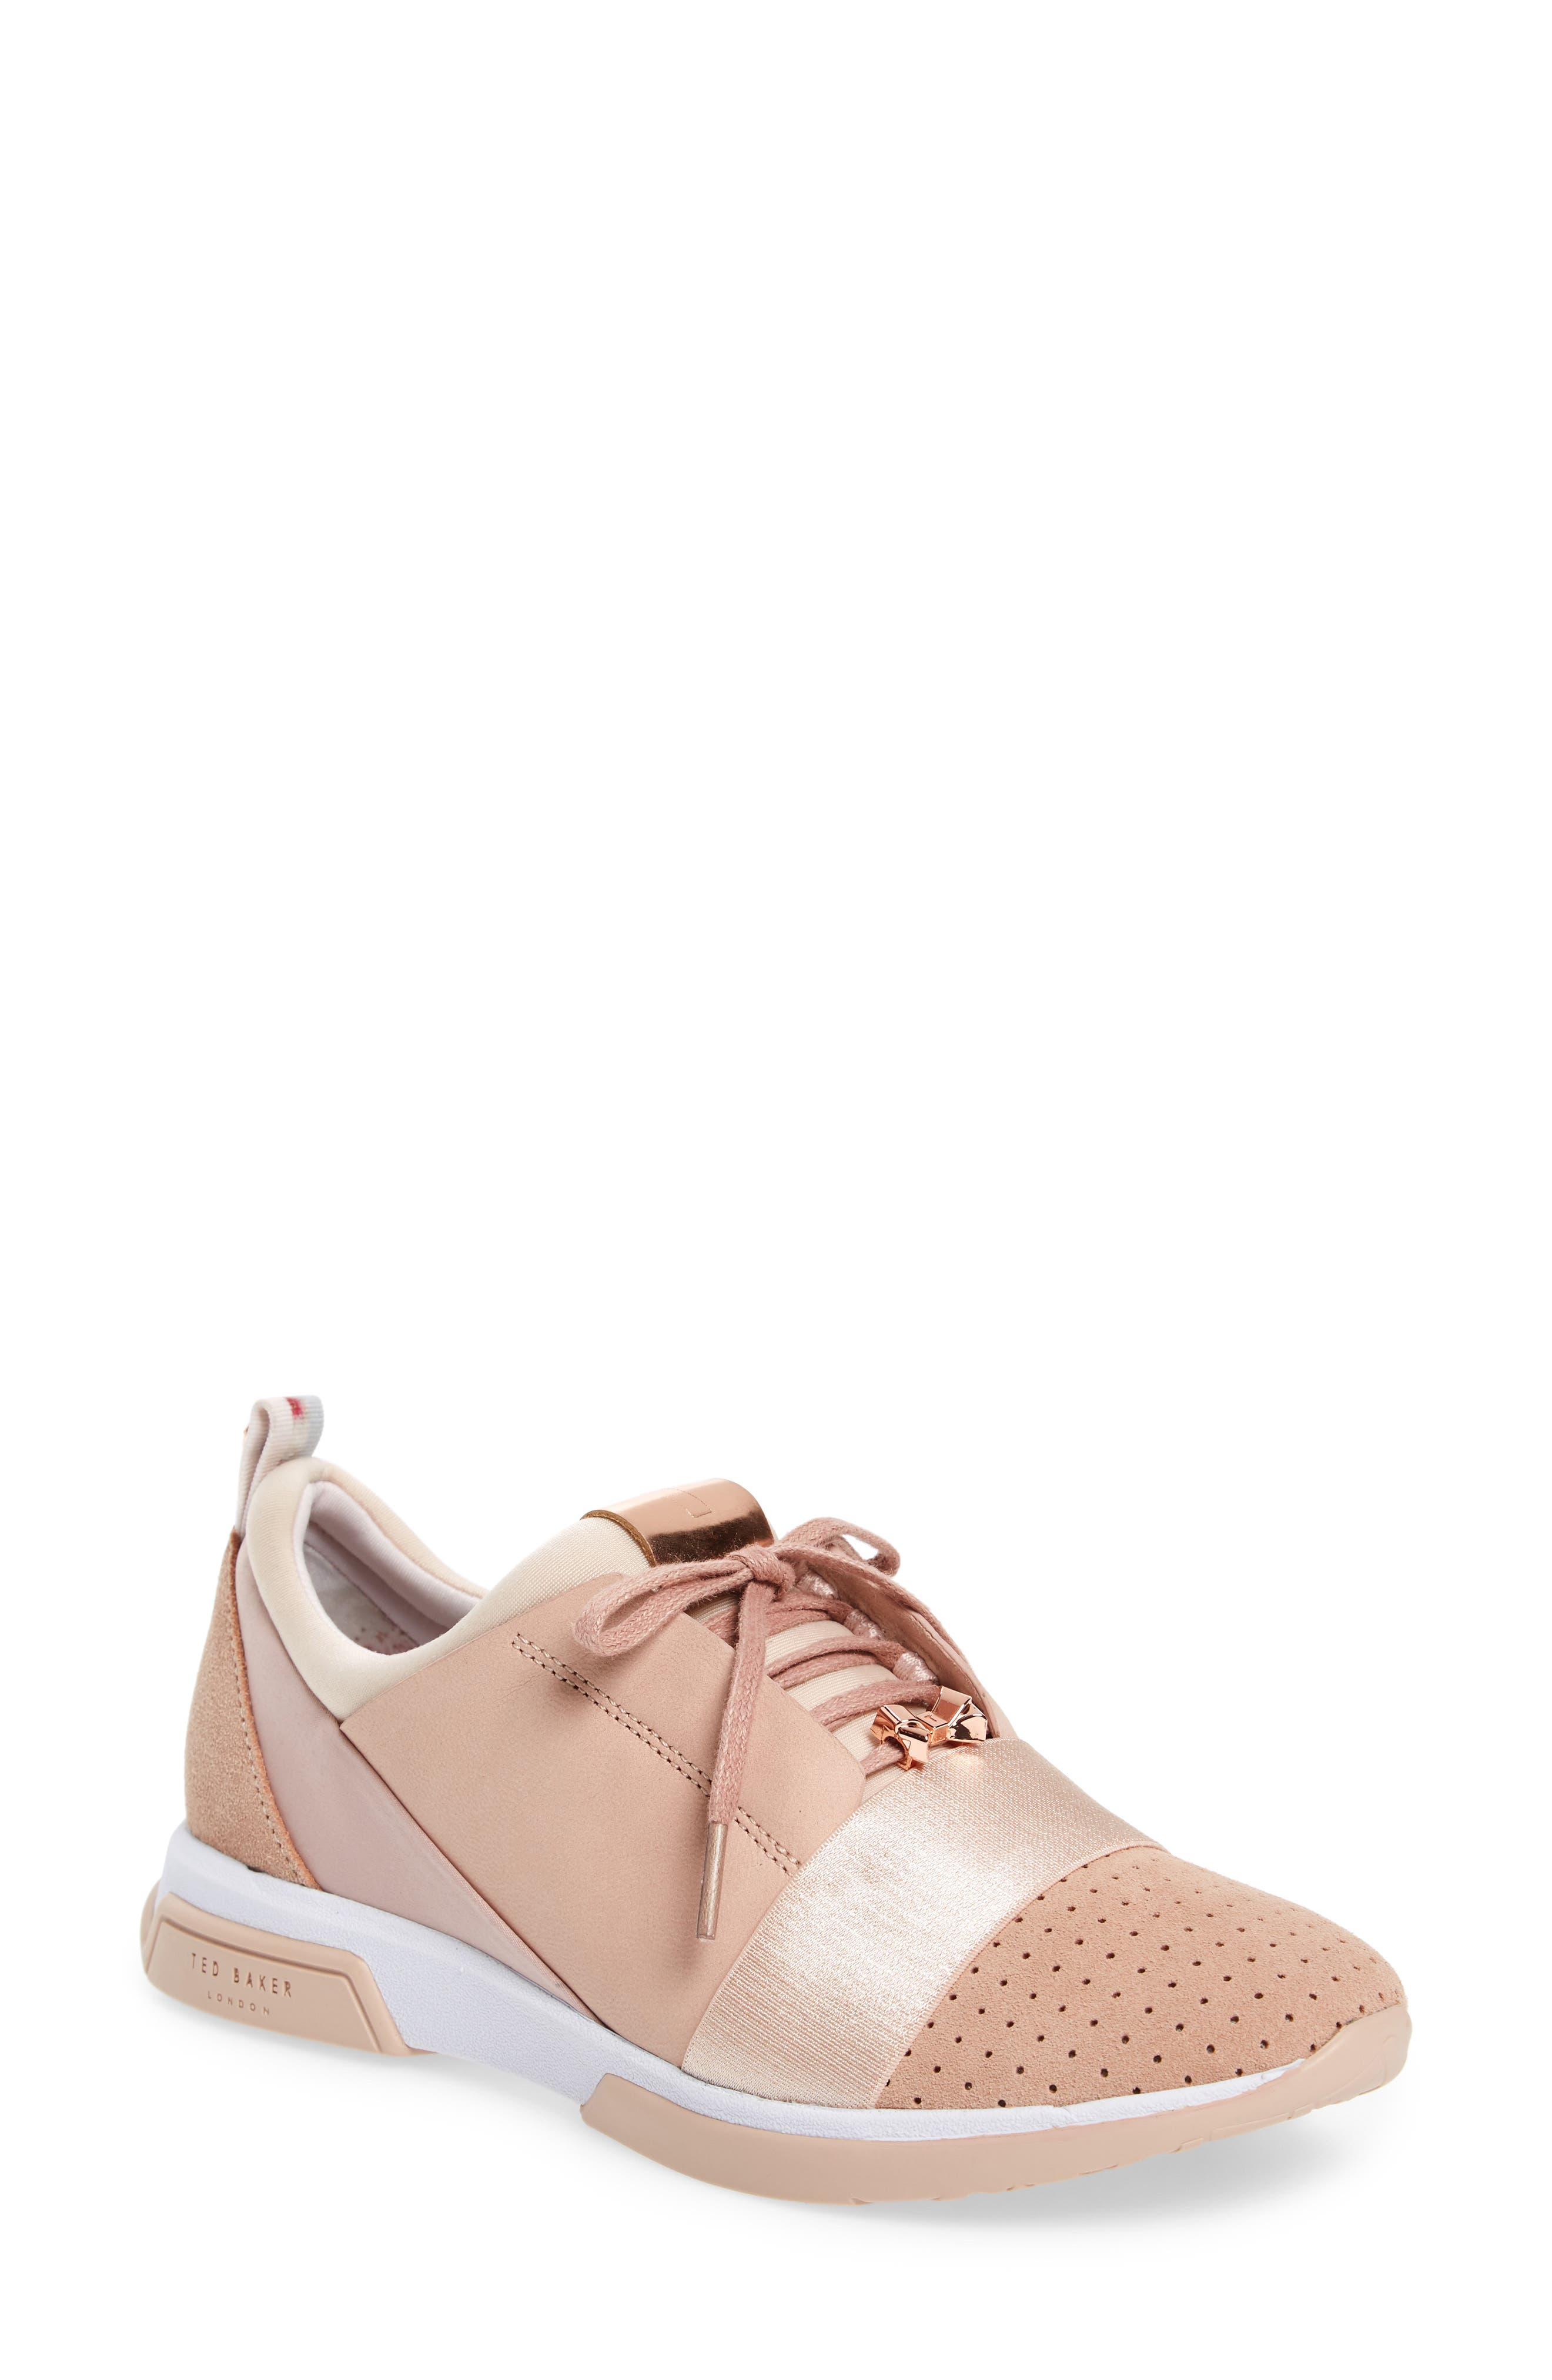 Cepa Sneaker,                         Main,                         color, Light Pink